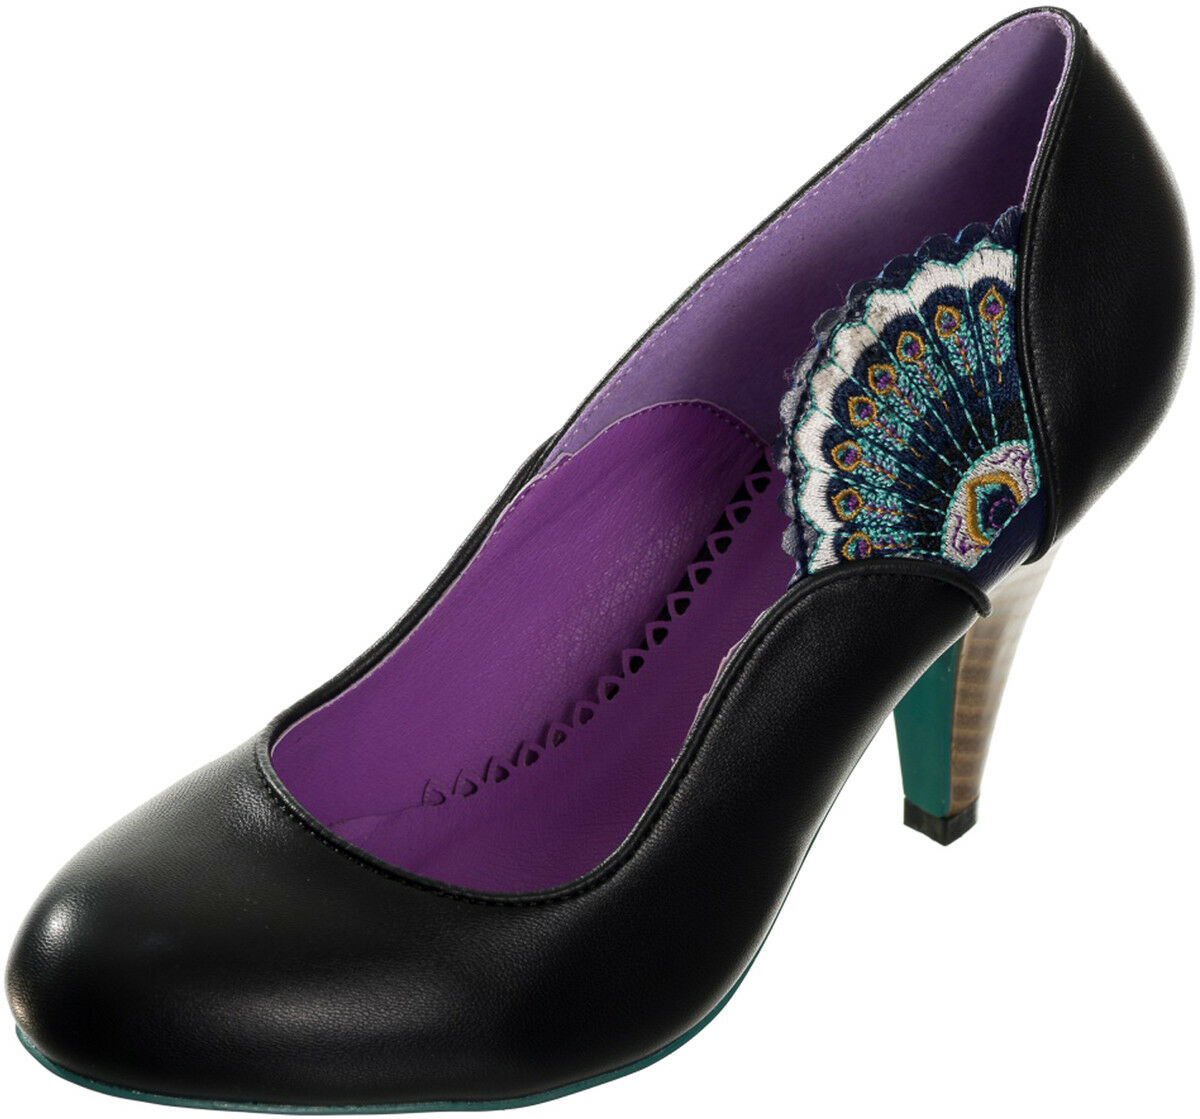 # Dancing Pumps Days Sway VINTAGE Peacock pavoni maschi MOLLA Pumps Dancing Tacco Alto Rockabilly 7913a5